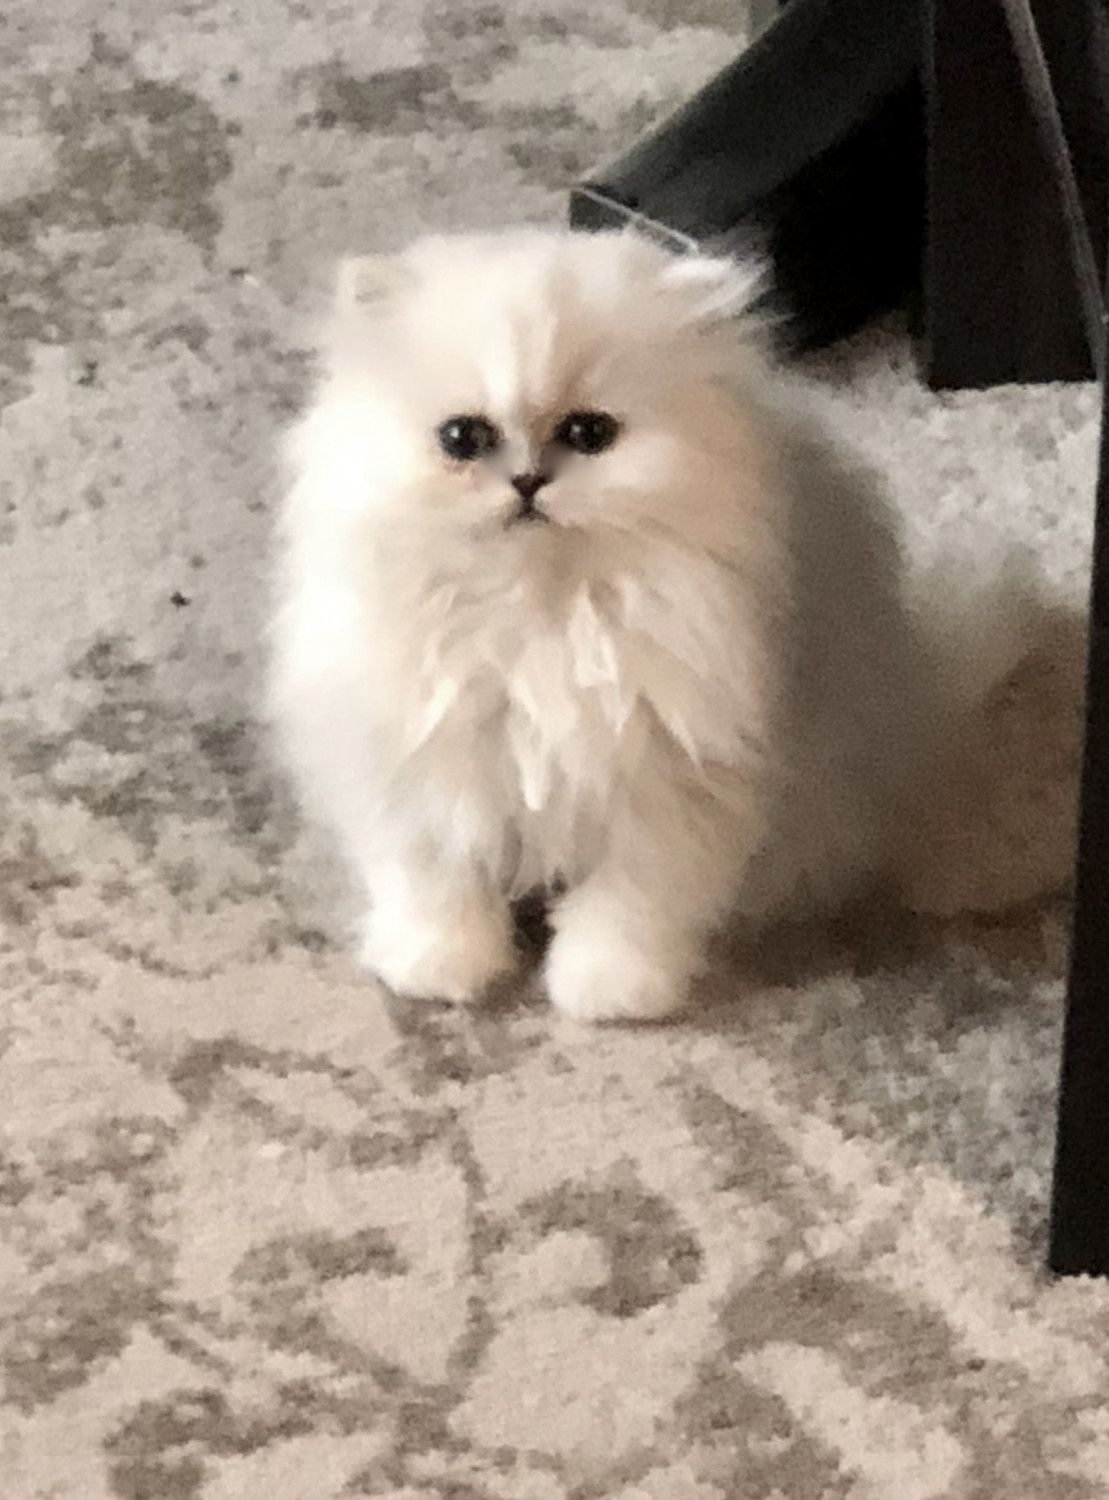 Persian Cats For Sale Cicero In Persian Cat Persian Cats For Sale Cats For Sale